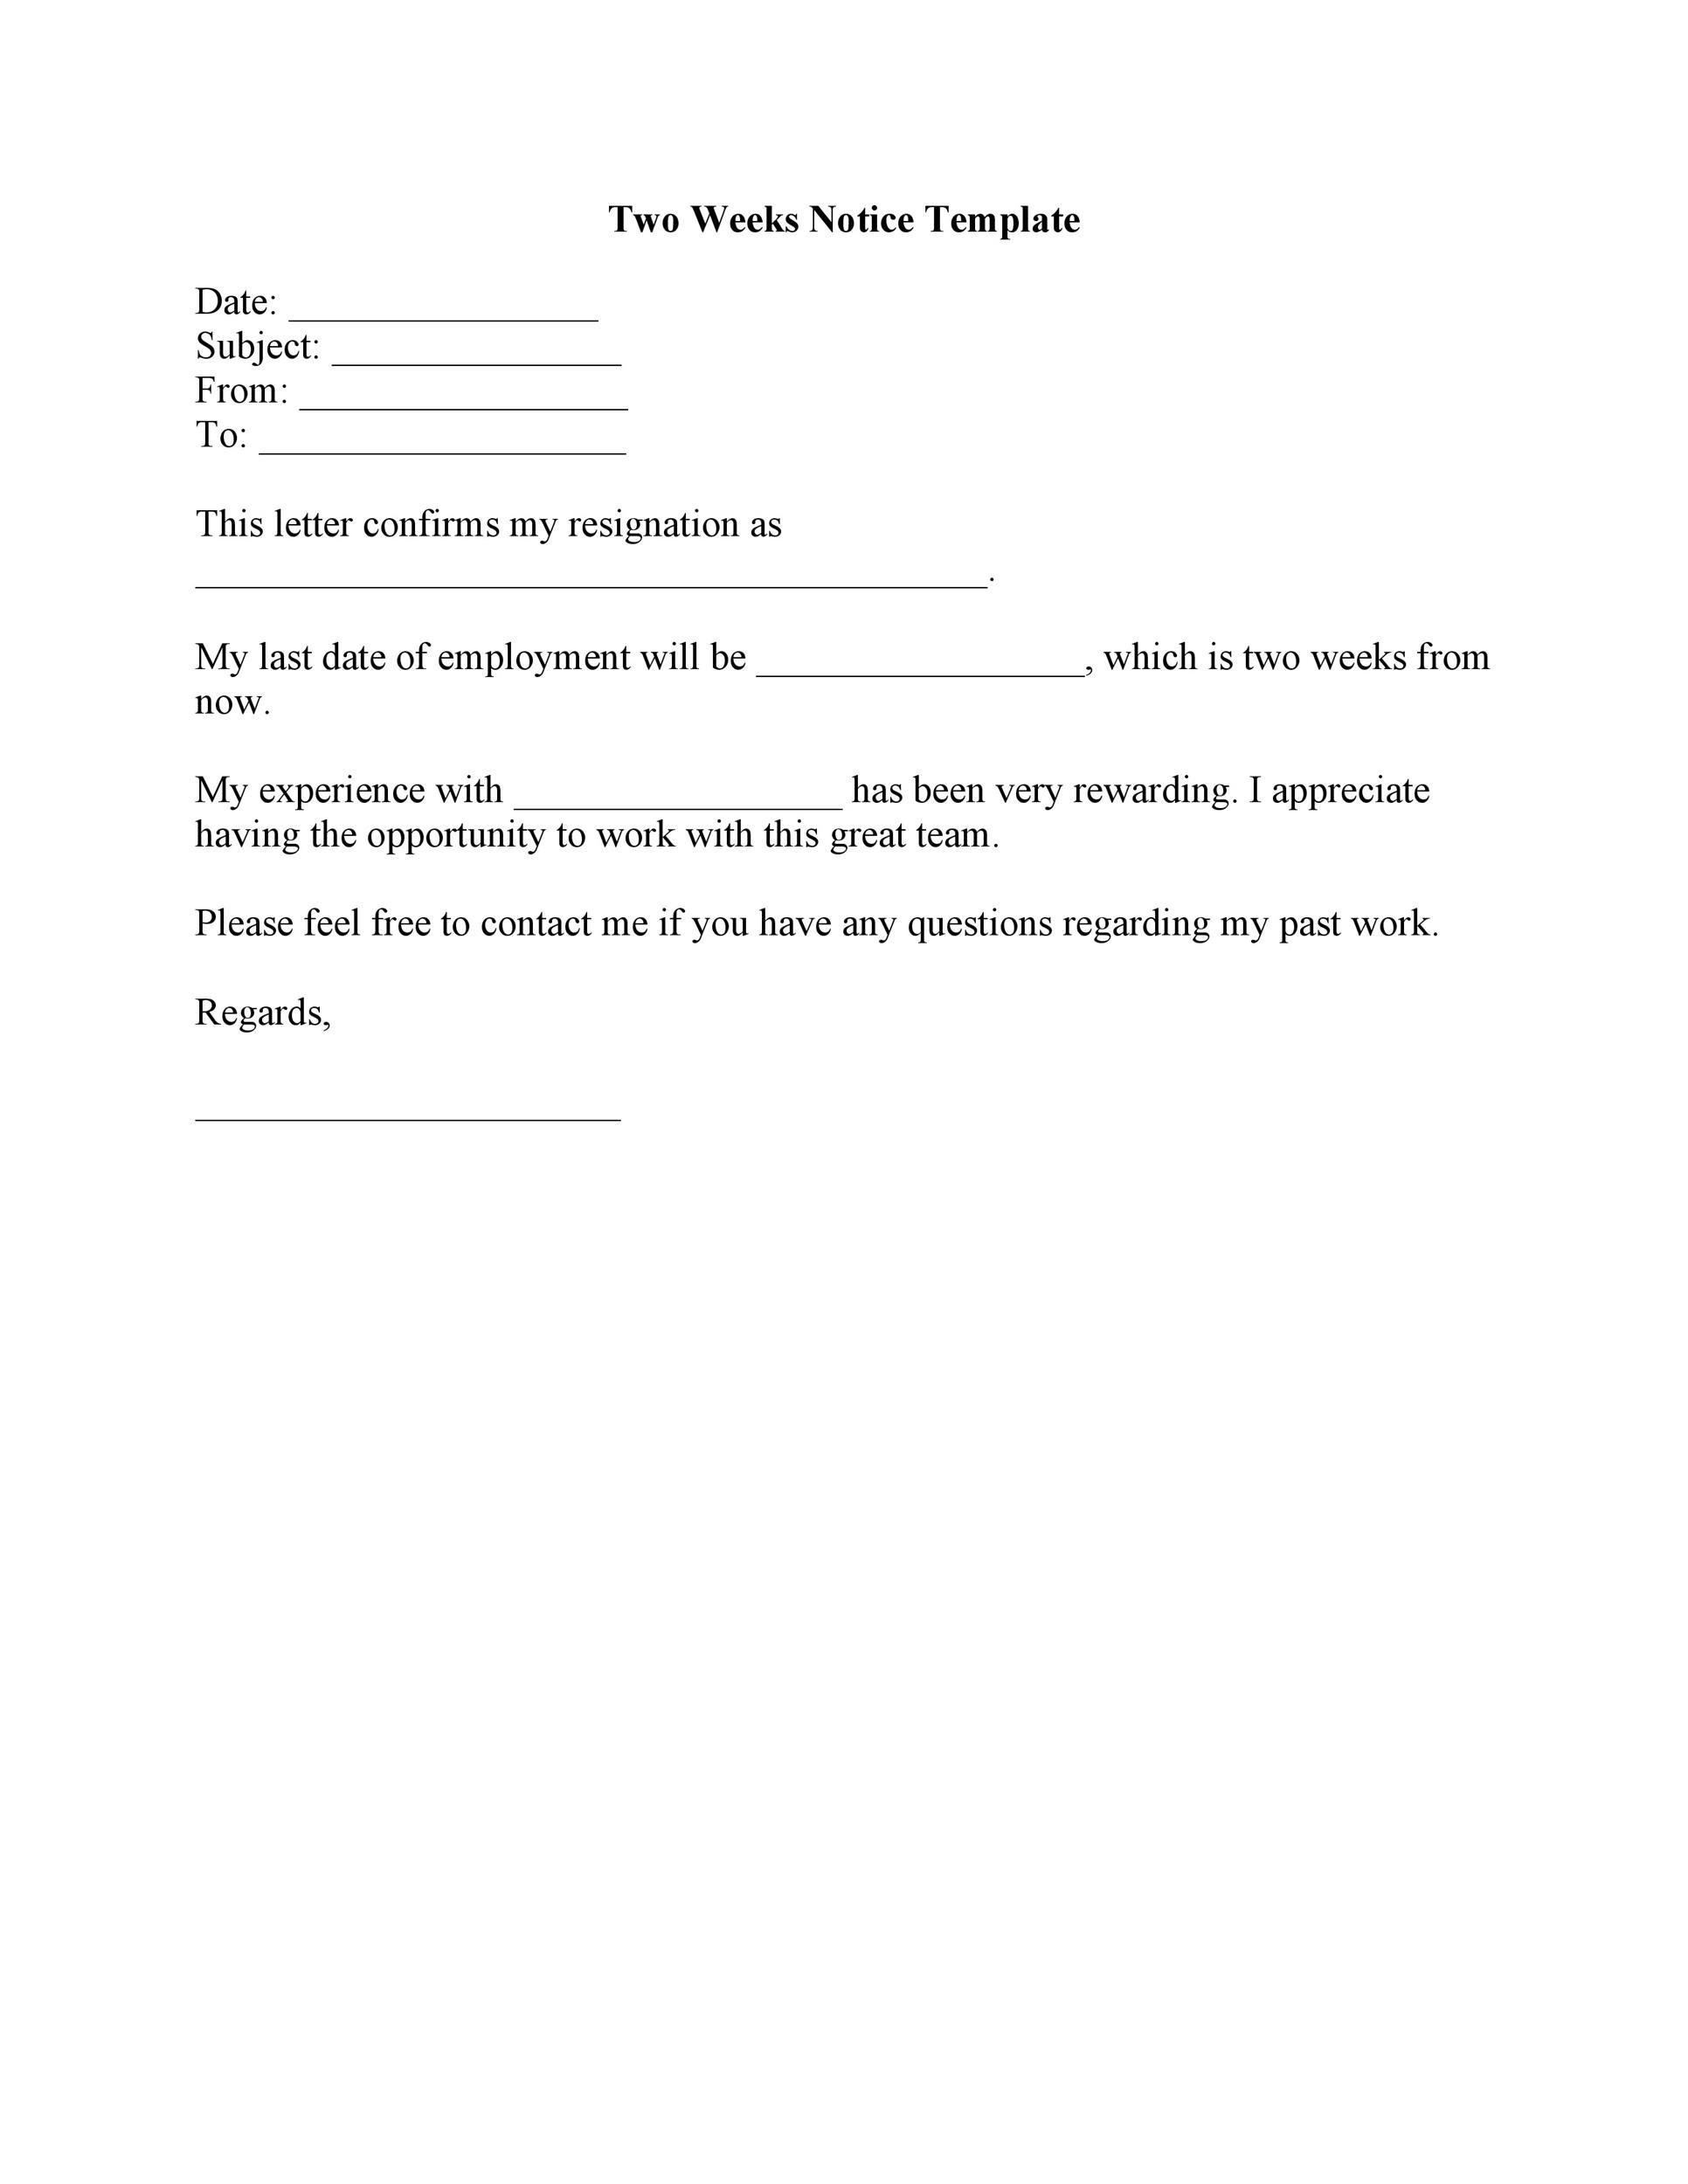 printable two weeks notice 07